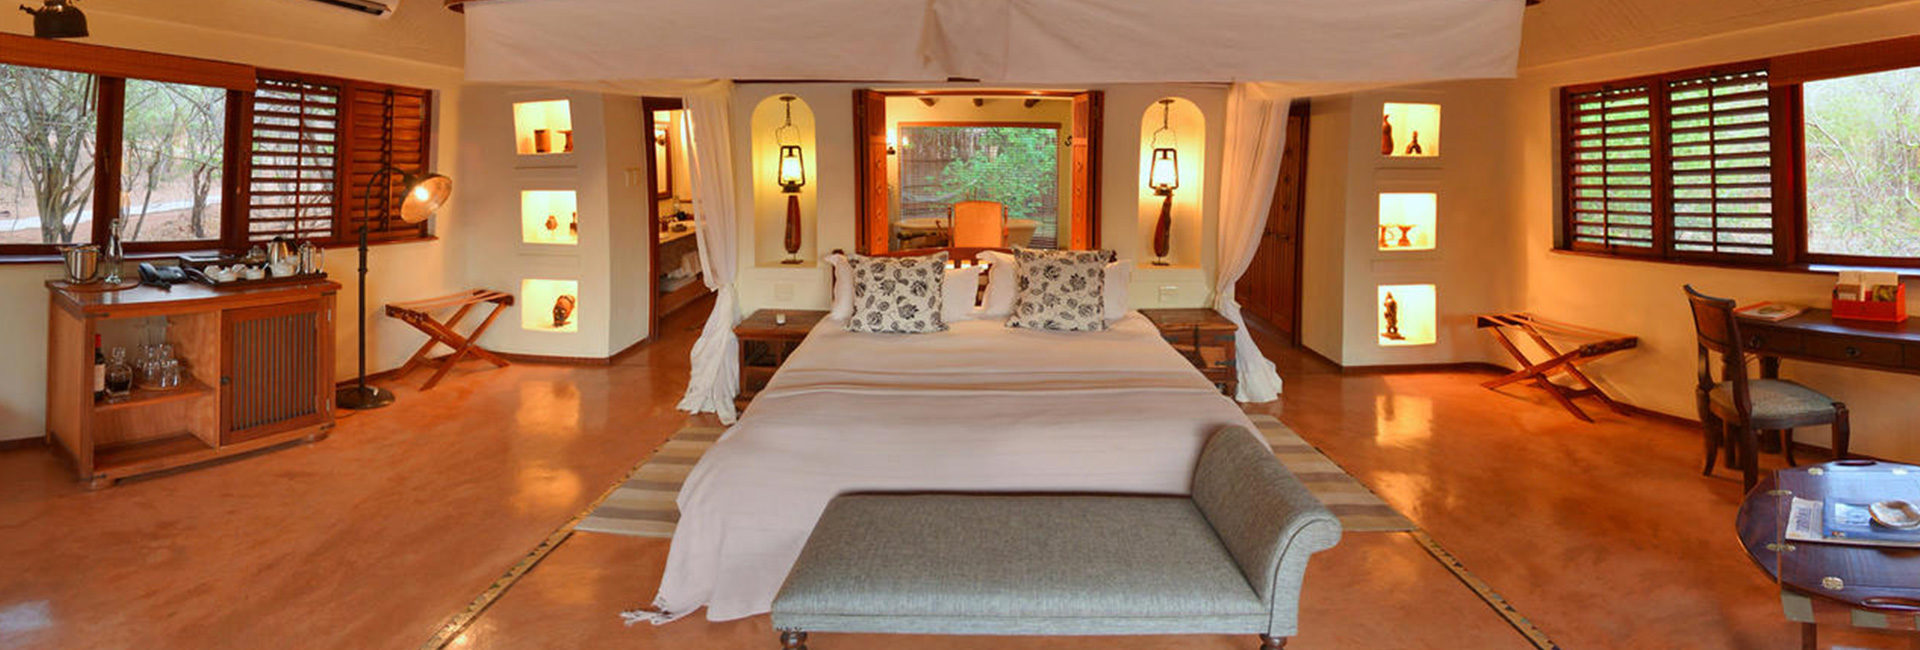 Enjoy colonial serenity at it's best